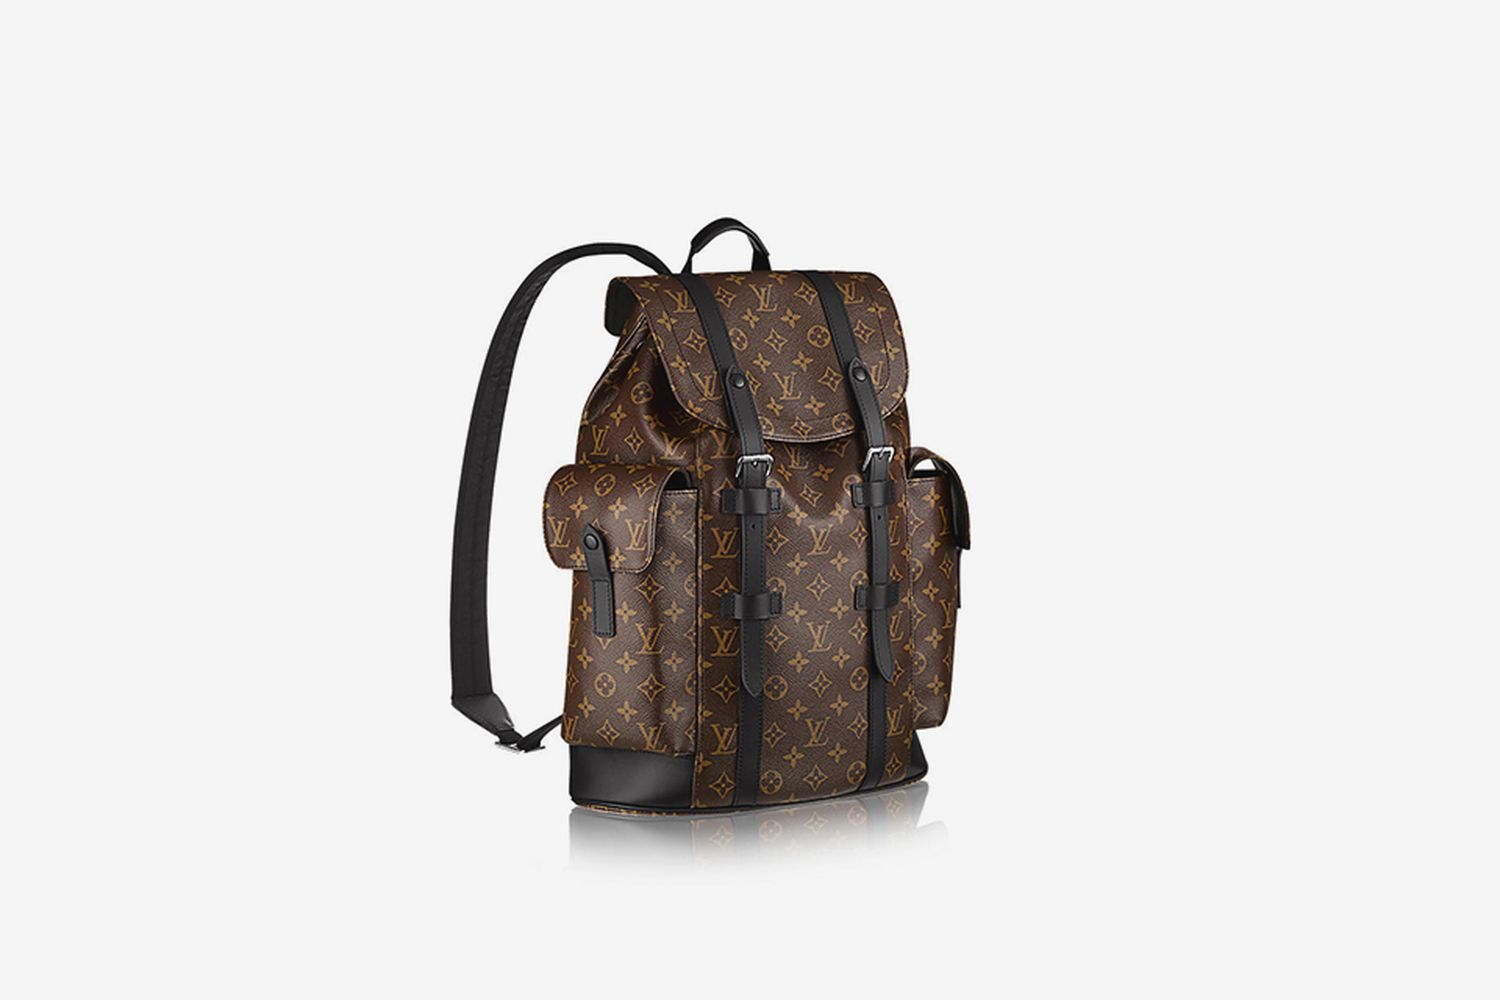 Christopher PM Backpack